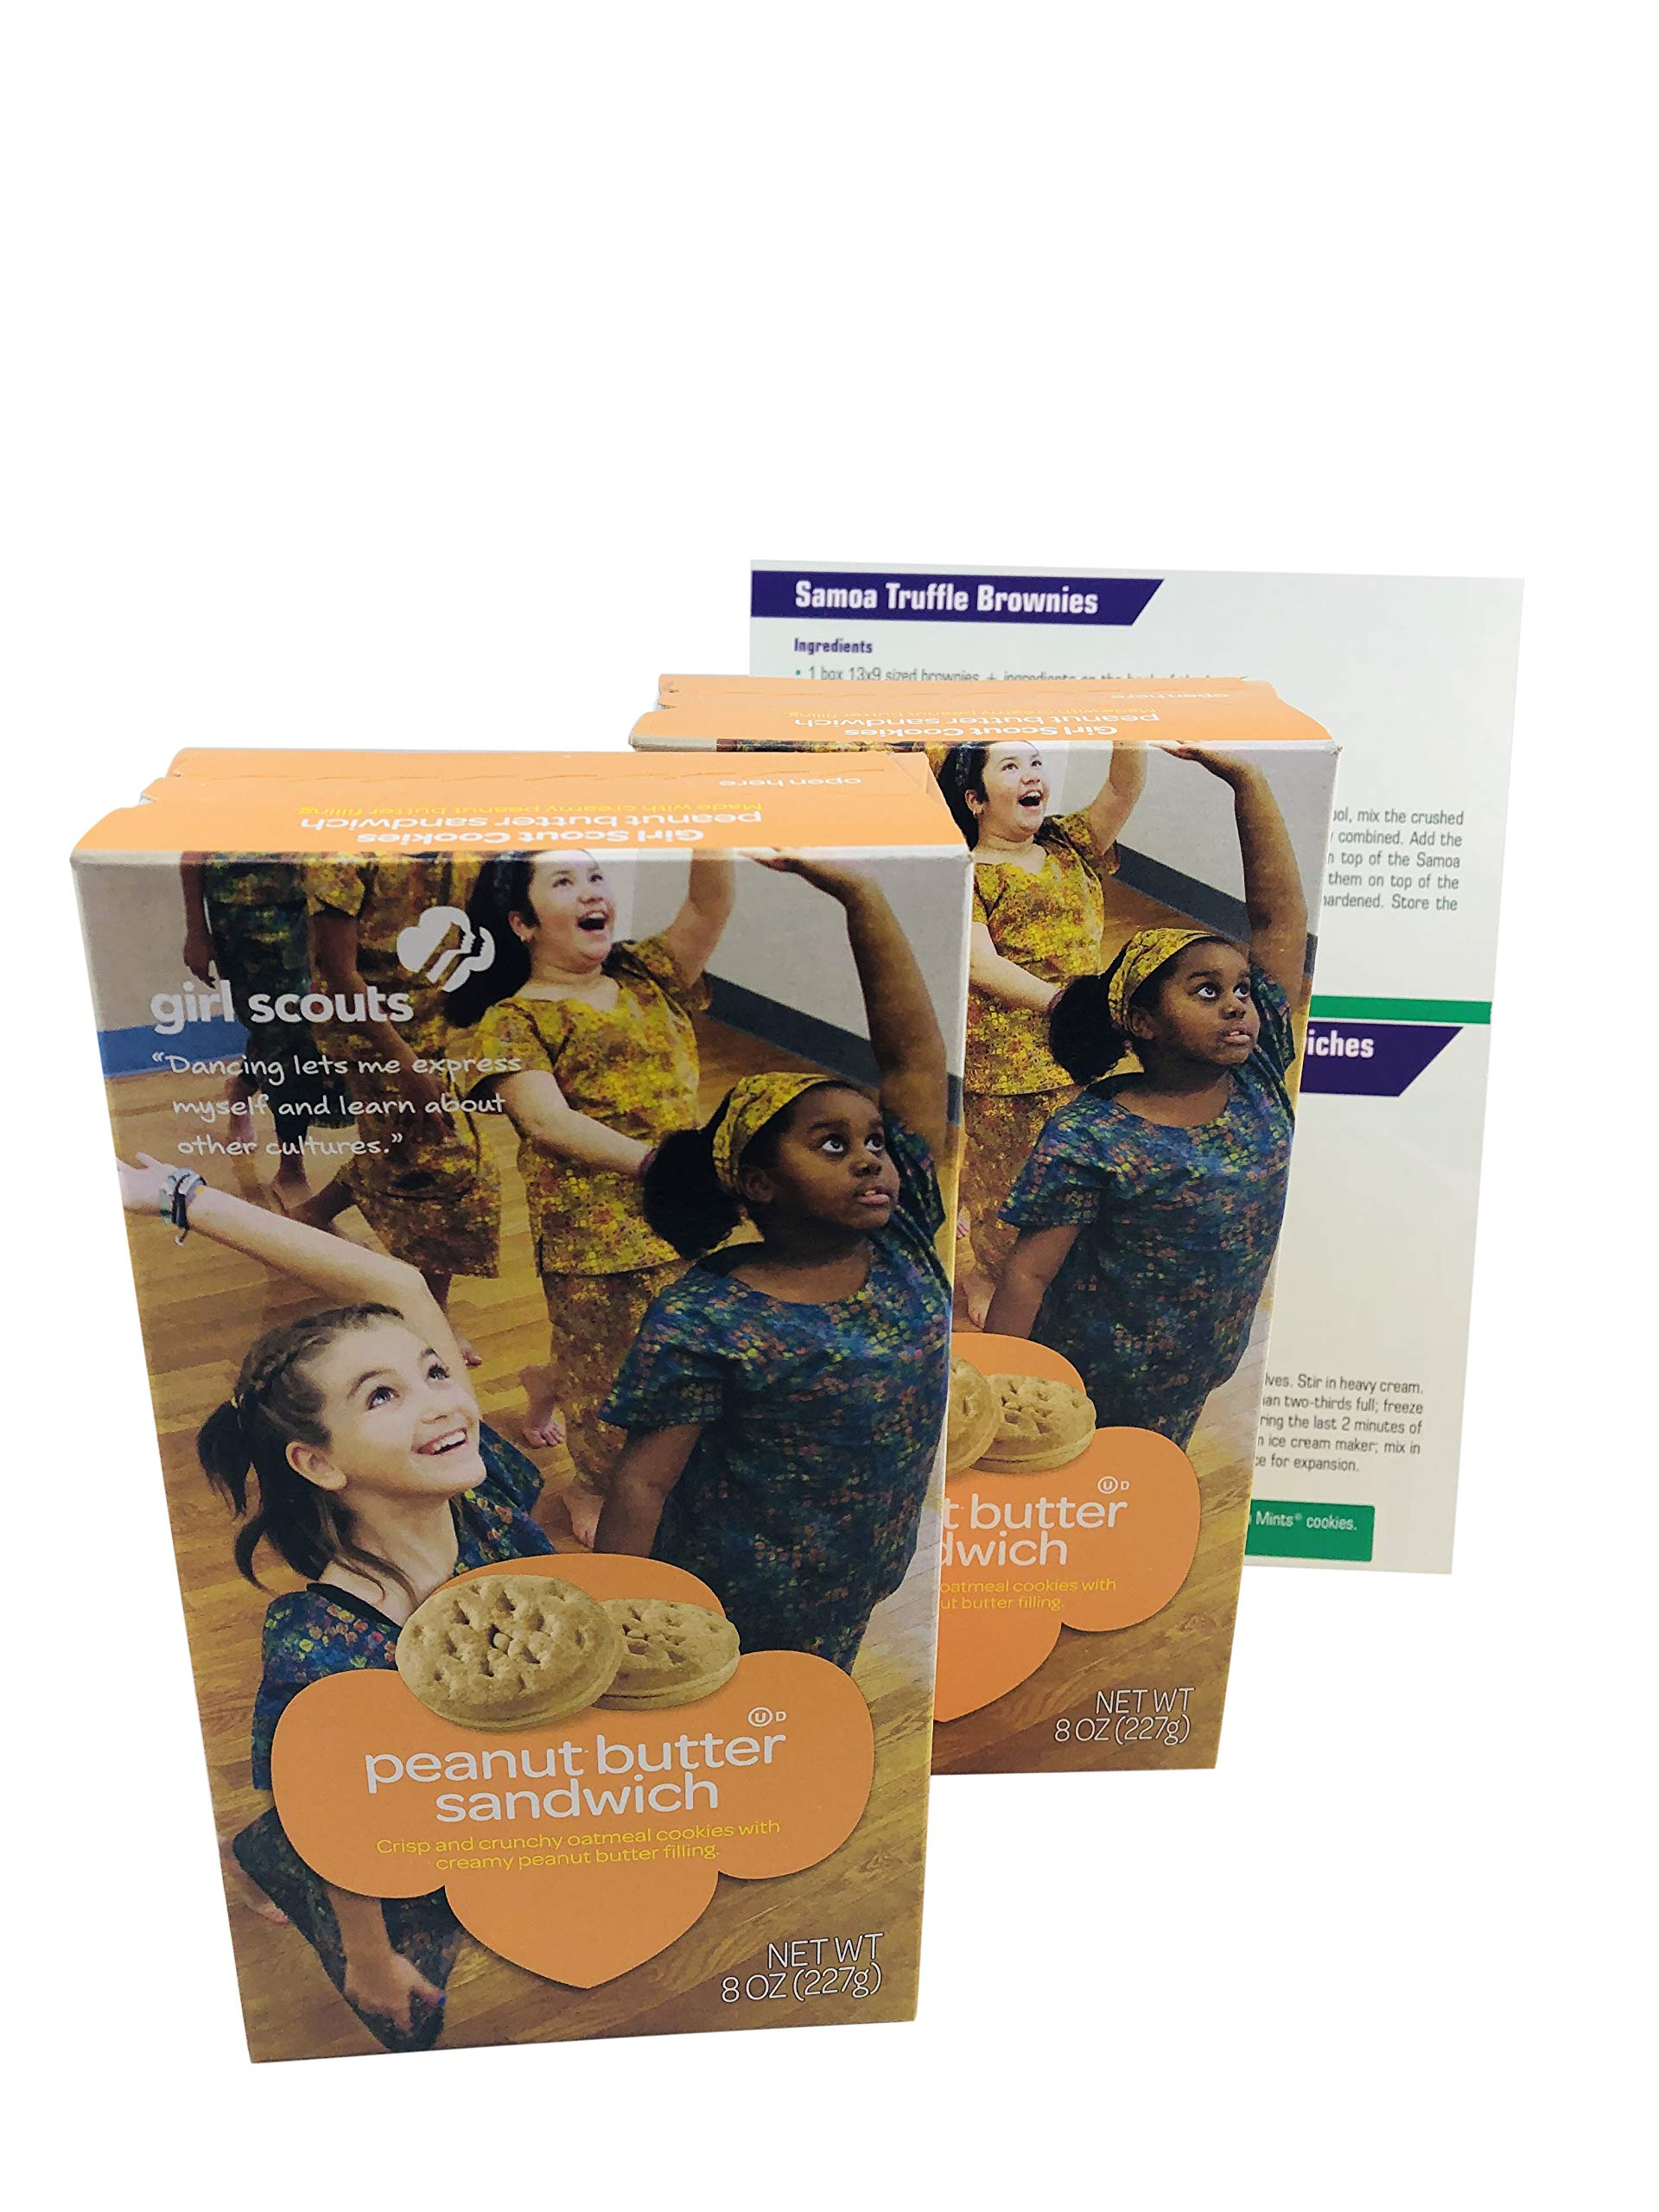 Girl Scout Cookies Do-si-dos (Peanut Butter Sandwich) 2 Pack, 8oz Each - Includes 4 Fun, Unique Recipes for Thin Mints, Samoas, Tagalongs and Do-si-dos